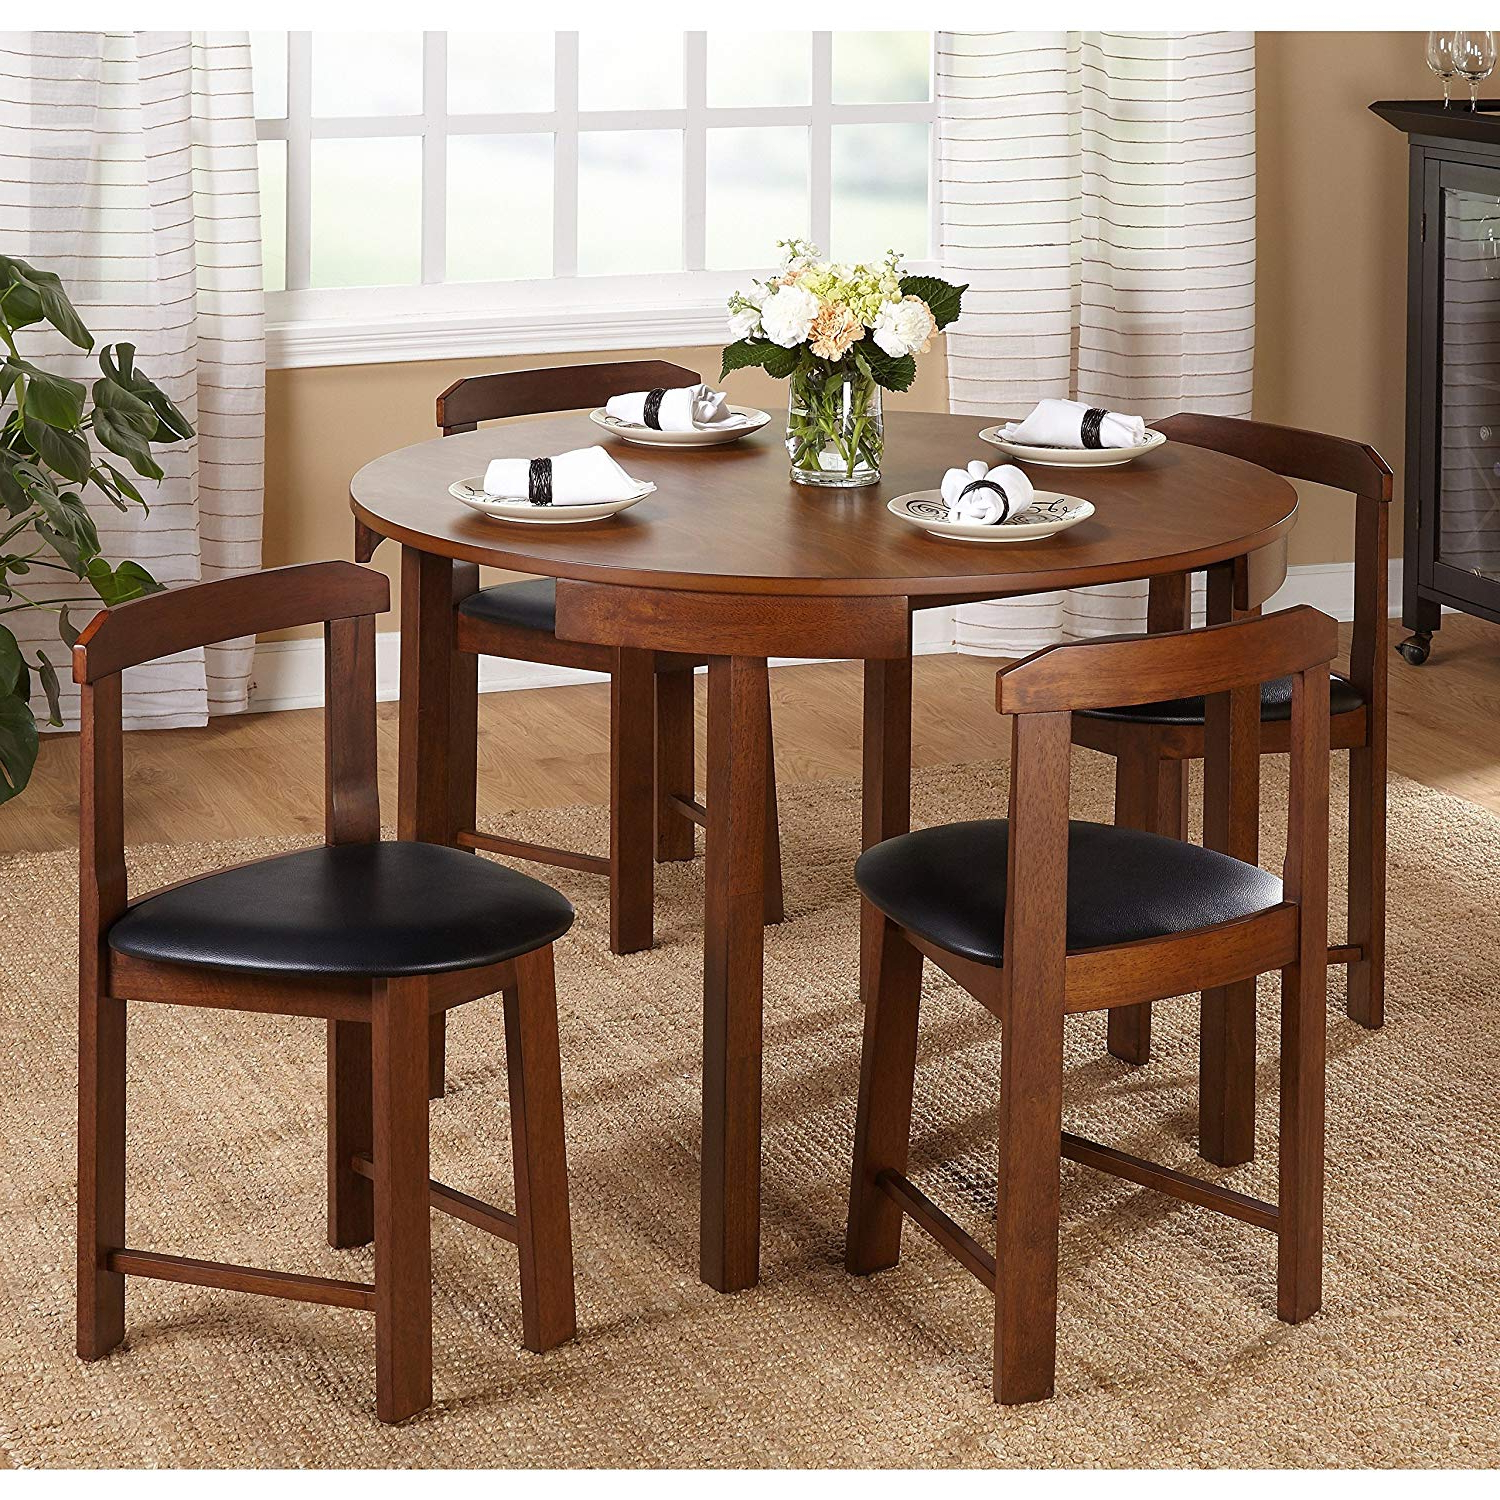 Preferred Debby Small Space 3 Piece Dining Sets Regarding 5 Piece Compact Round Dining Set Home Living Room Furniture (Walnut/black  Faux Leather) (View 17 of 25)